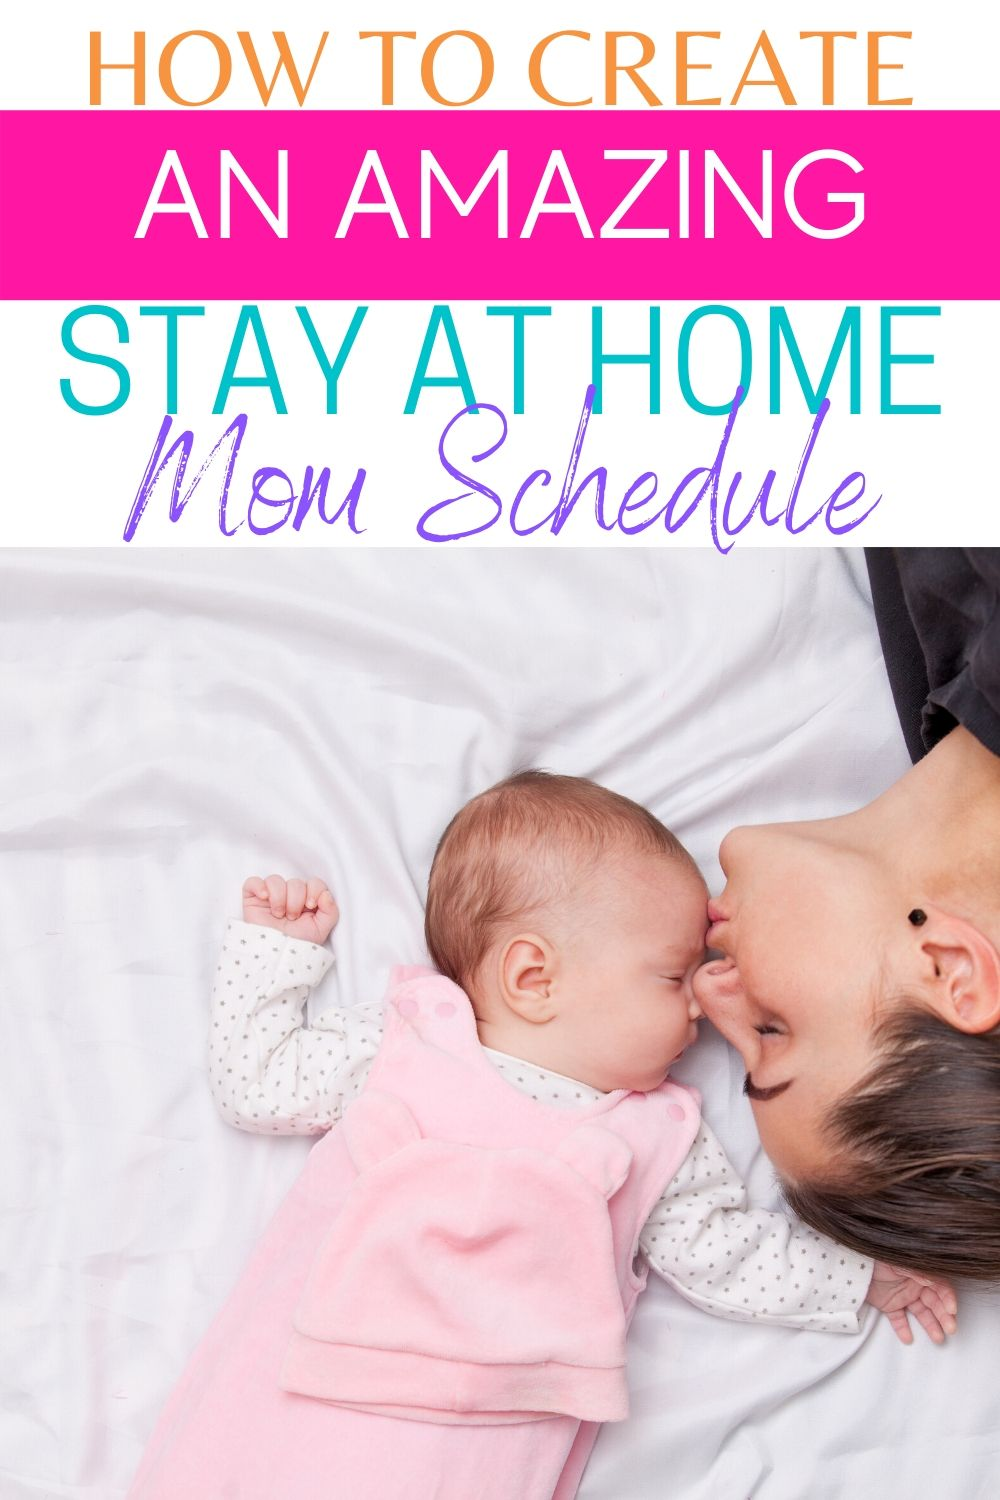 I'm going to share how you can create an amazing stay at home mom schedule that you can keep up with. So you can feel like you are winning every day. #momschedule #schedule #howto #organize #routine via @homebyjenn